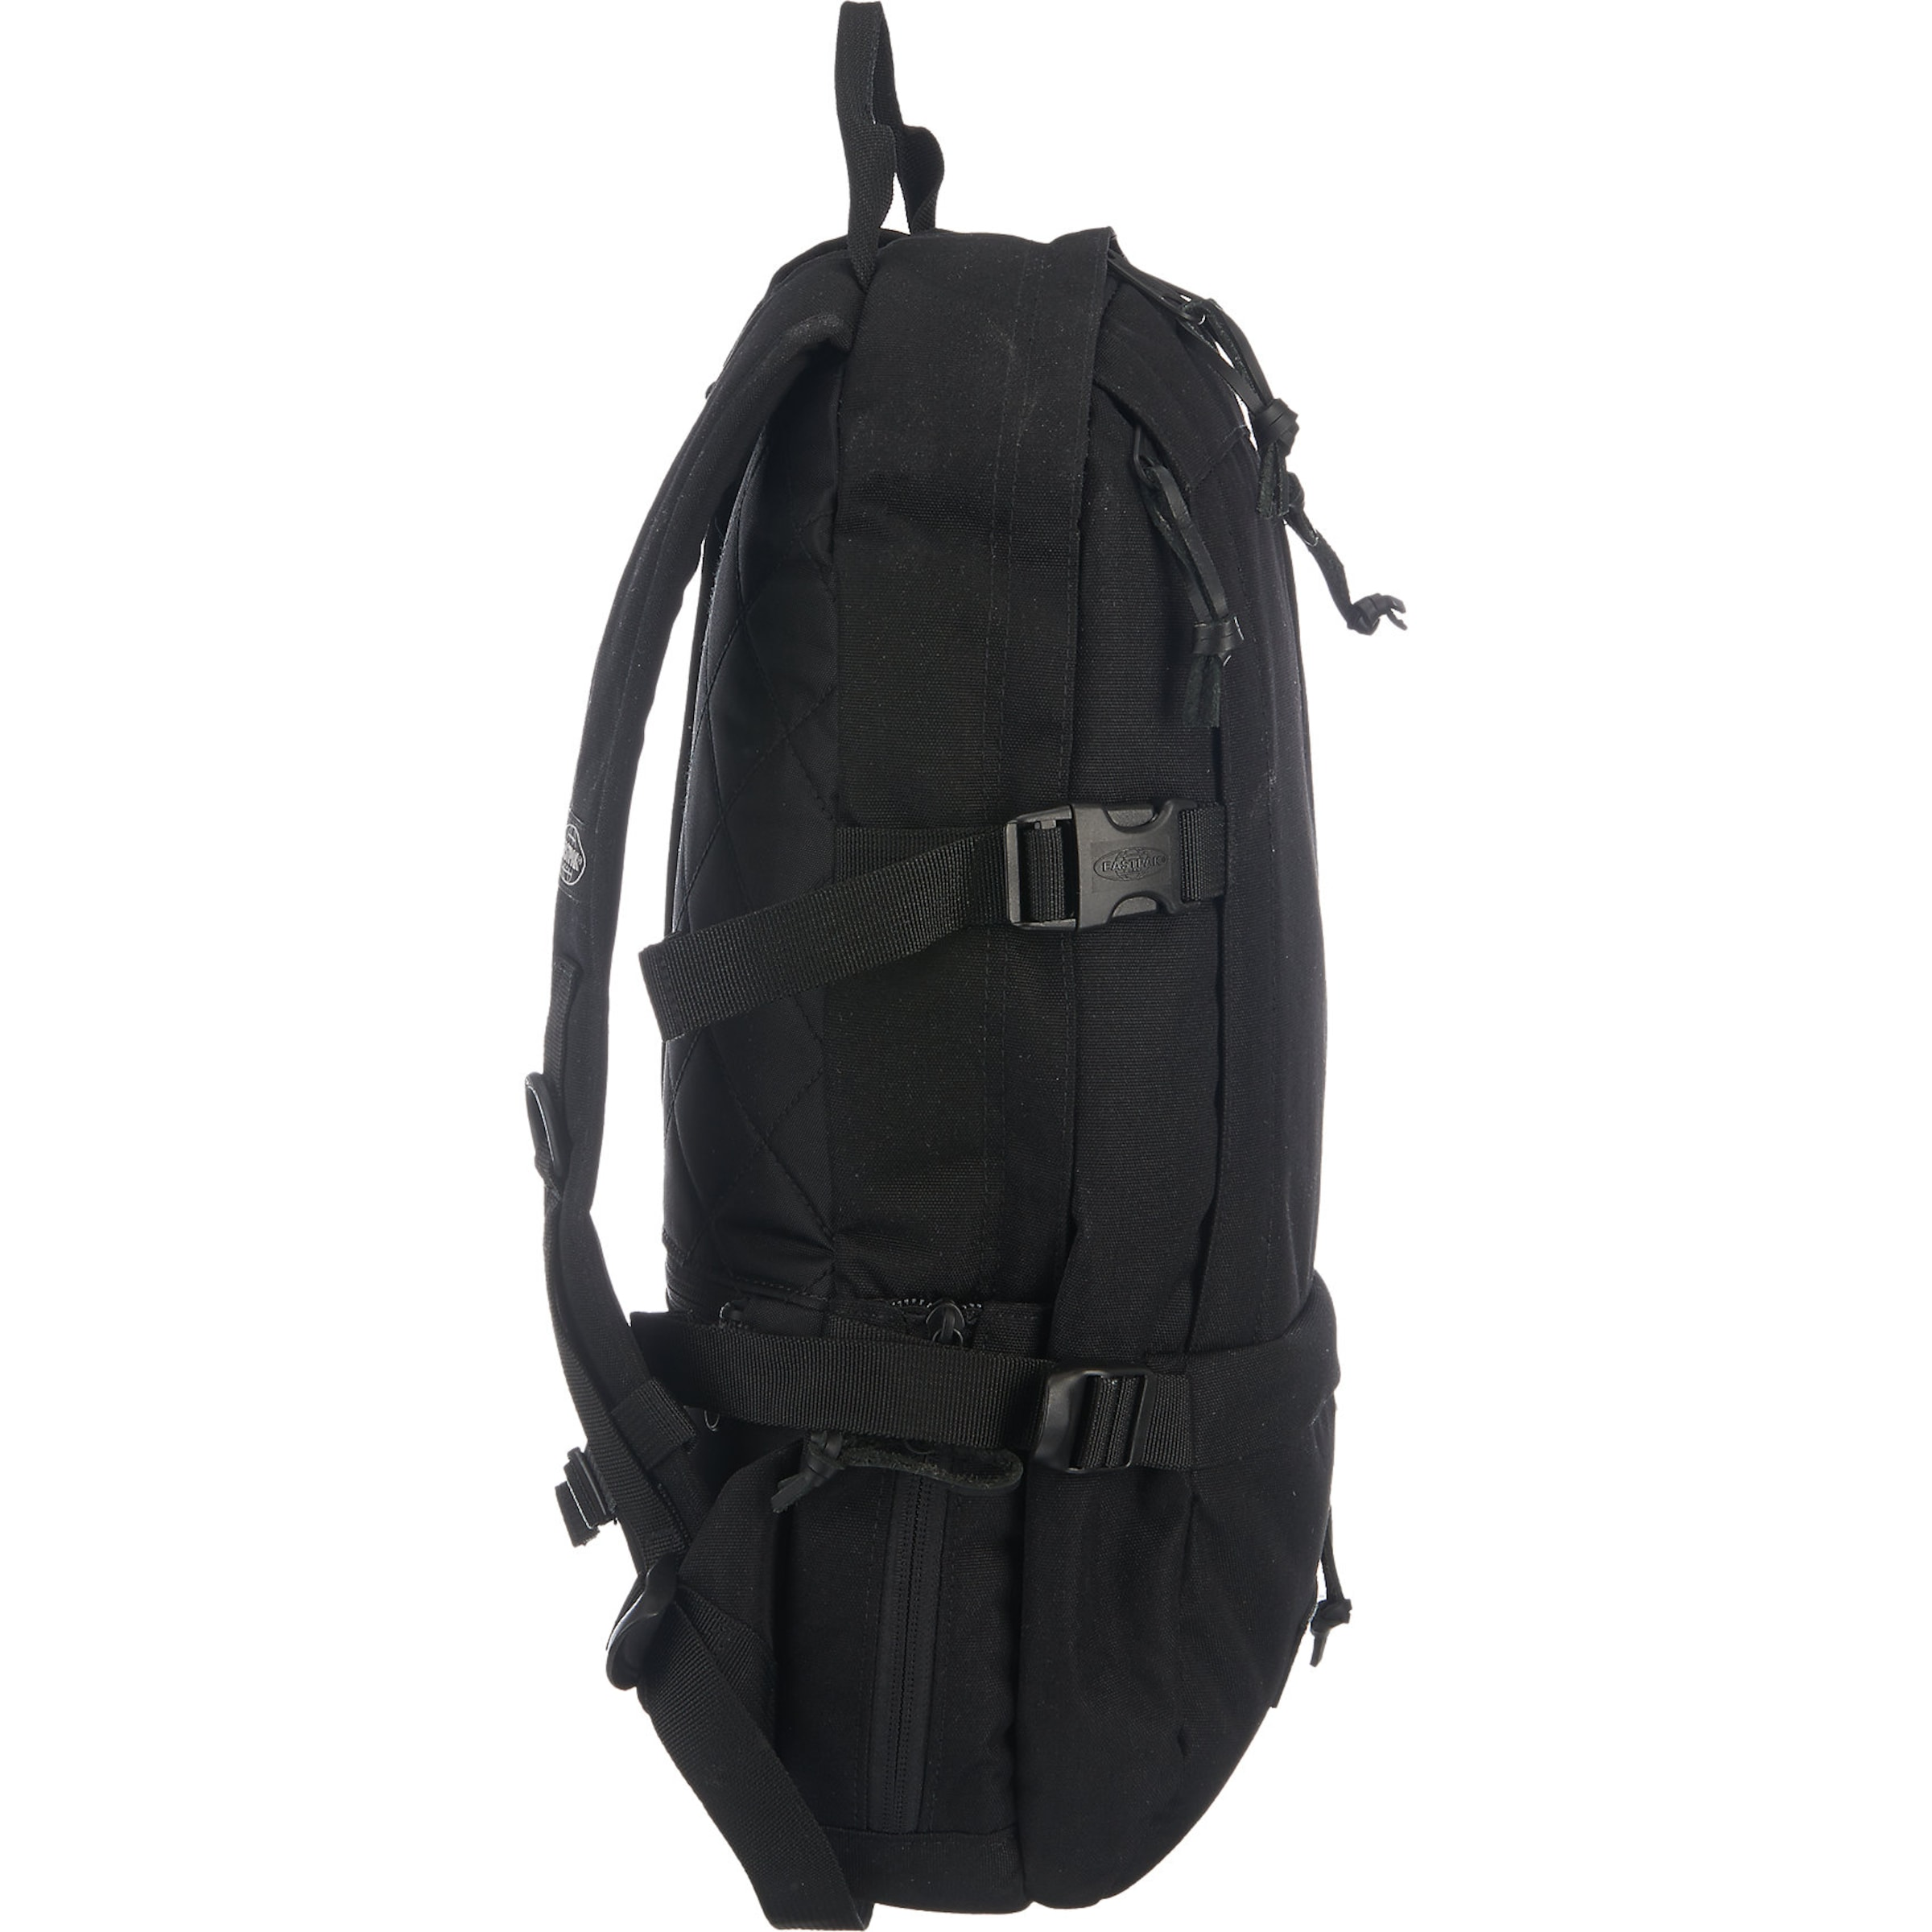 Qualität Freies Verschiffen EASTPAK Floid Rucksack Verbilligte Hohe Qualität Online Kaufen XWGngYUZ